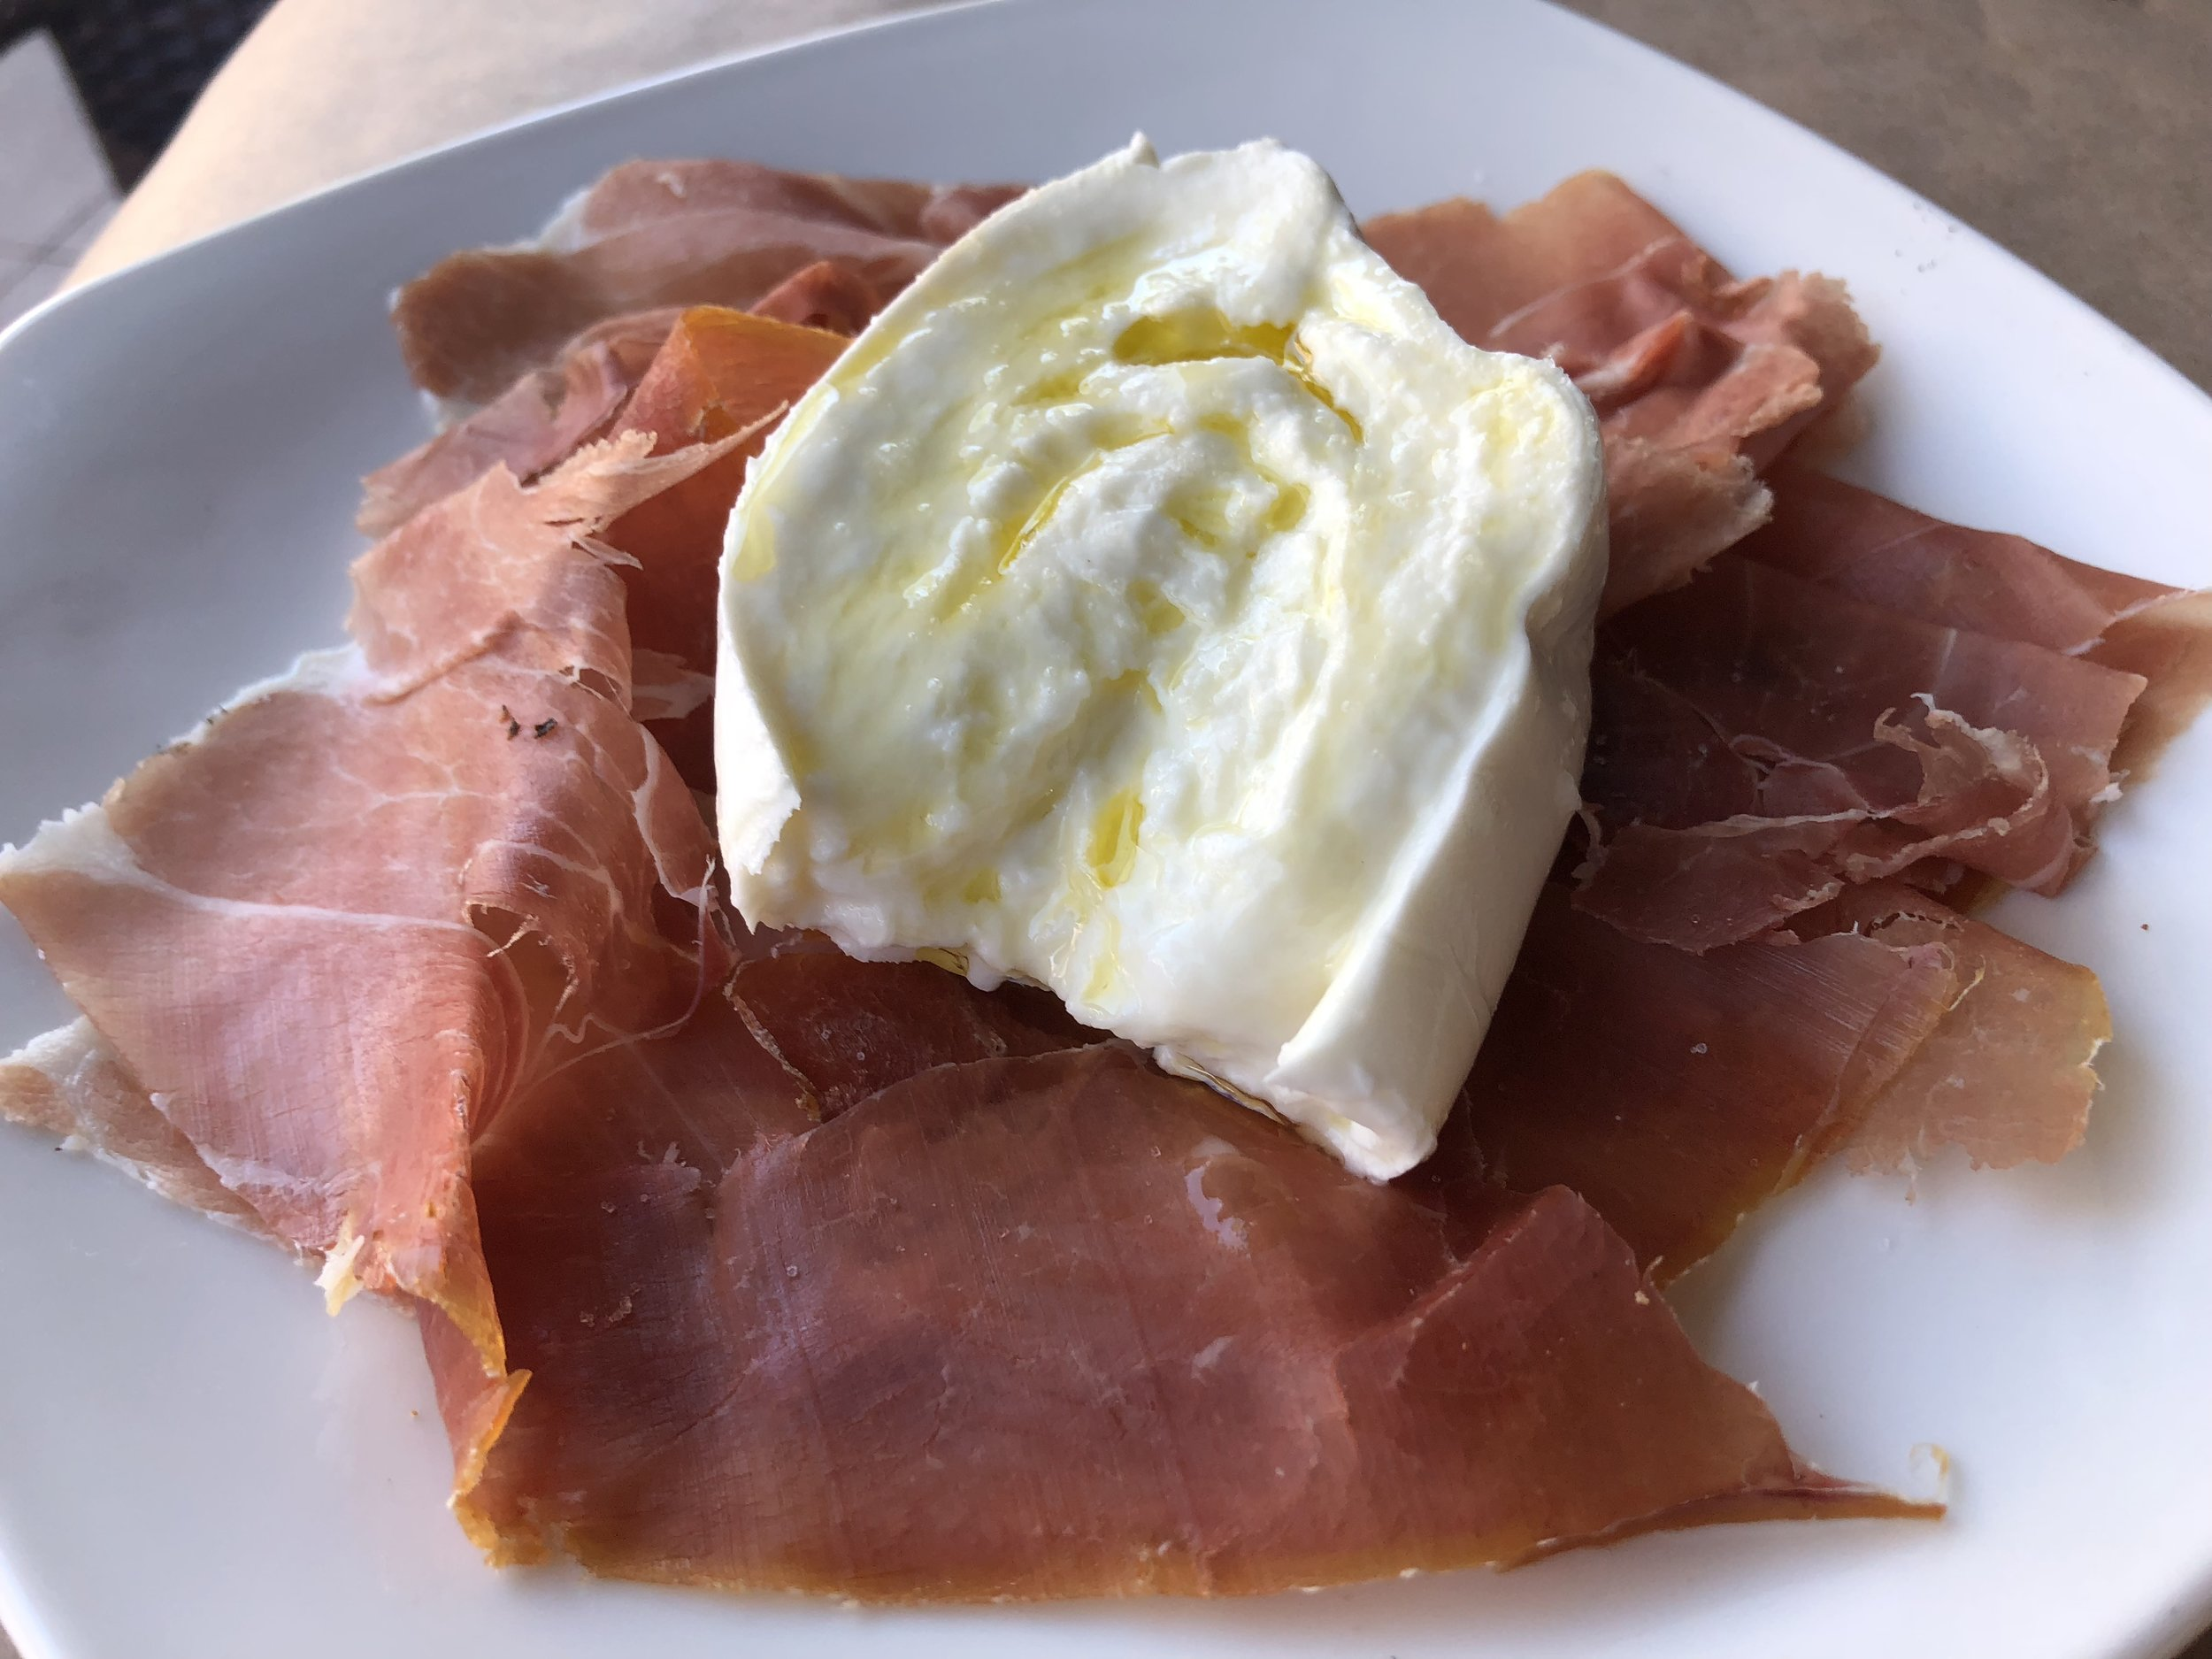 Proscuitto San Daniele & Burrata  - up close & personal